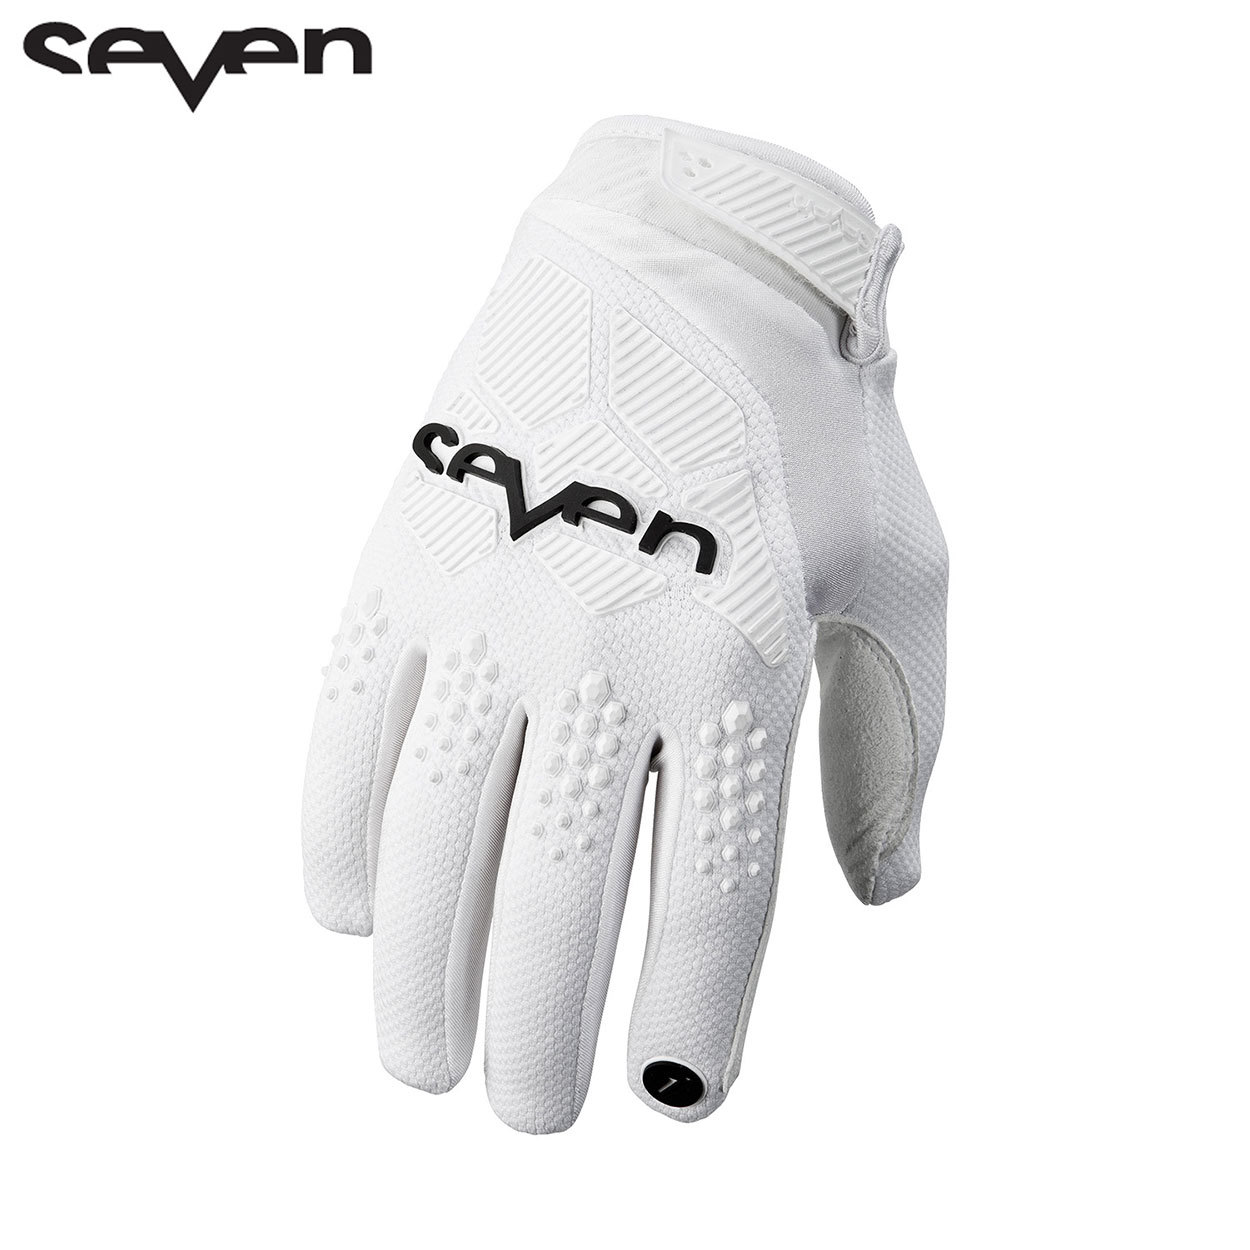 17.1 Rival Adult Glove